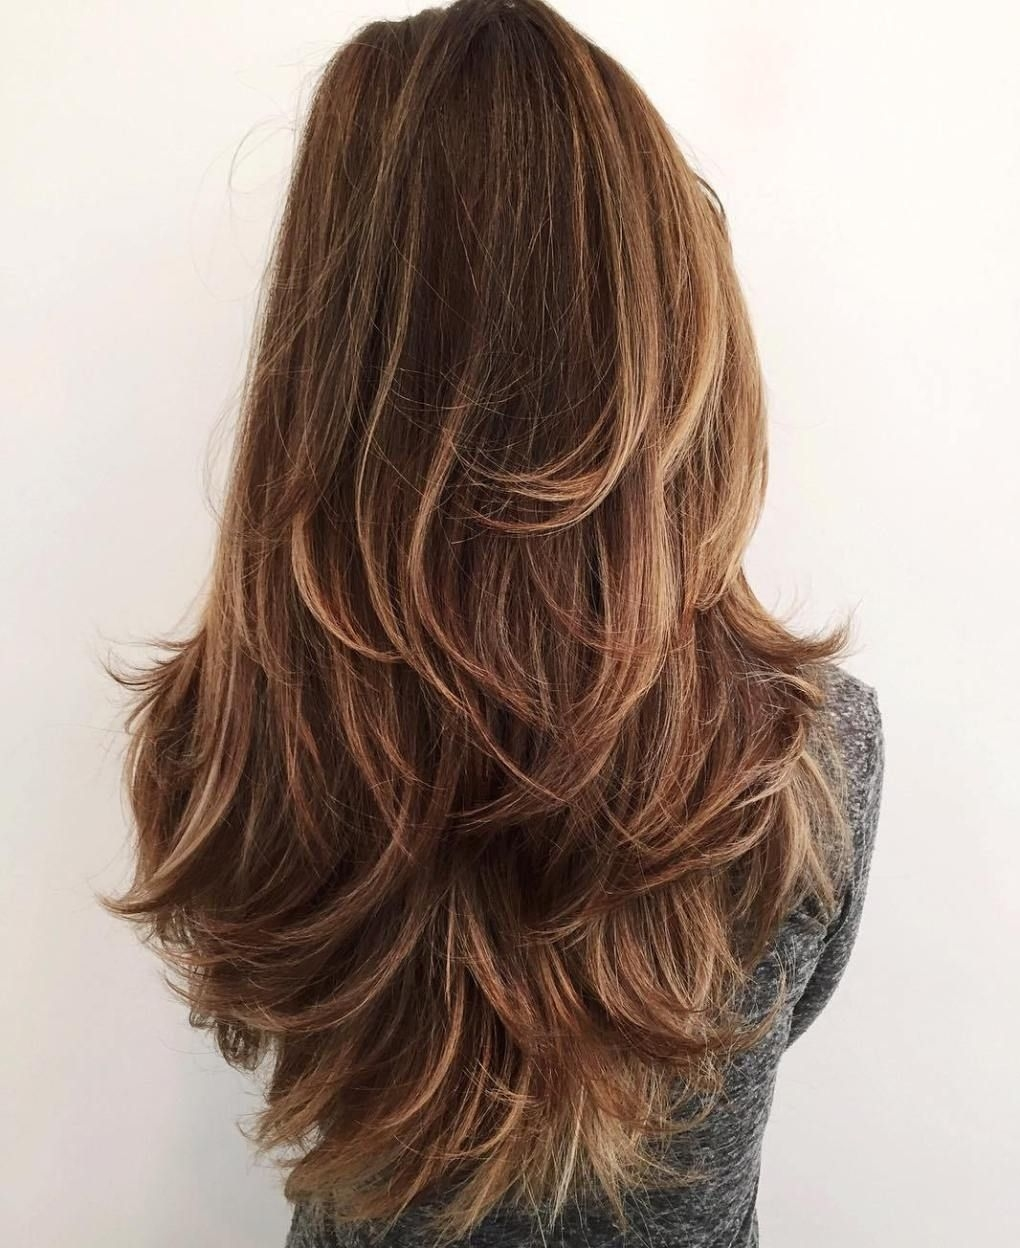 50 Lovely Long Shag Haircuts For Effortless Stylish Looks | Hair with regard to Haircuts For Thick Long Hair With Layers